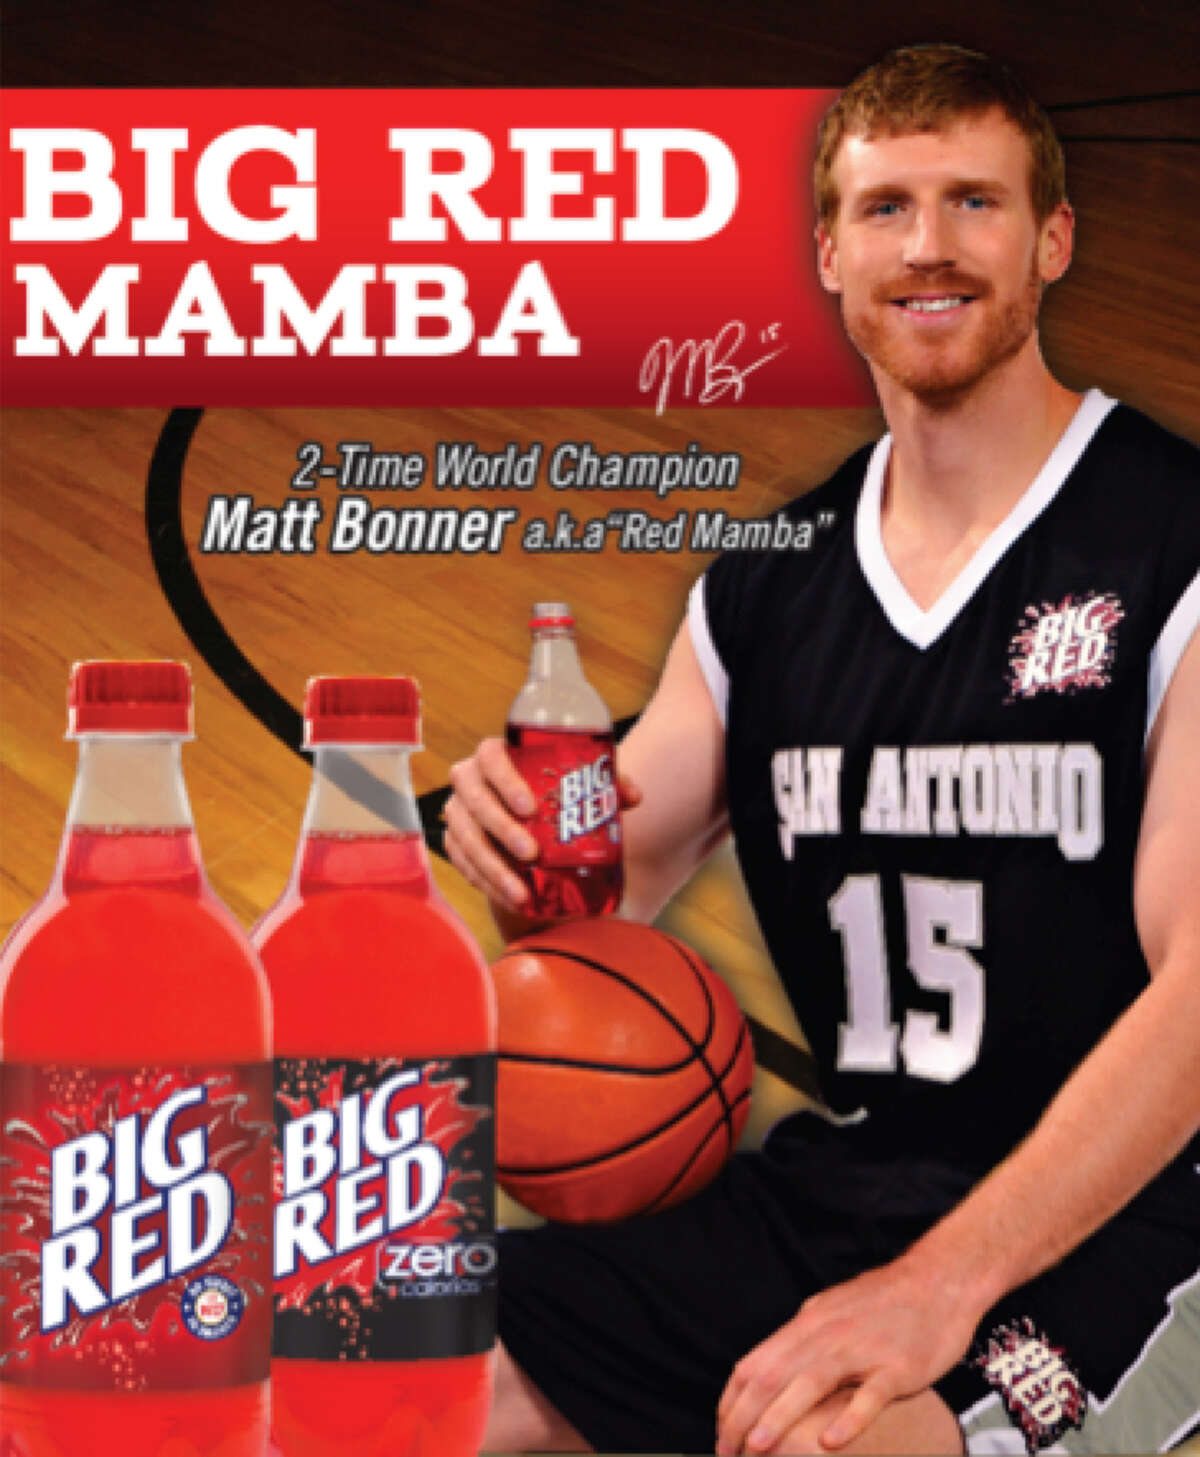 """The Spurs' Matter Bonner has signed on to be a brand ambassador for San Antonio's favorite flavored soda, Big Red. But why stop there? Click through the slideshow for 11 more red products we'd like to see the """"Red Mamba"""" endorse."""